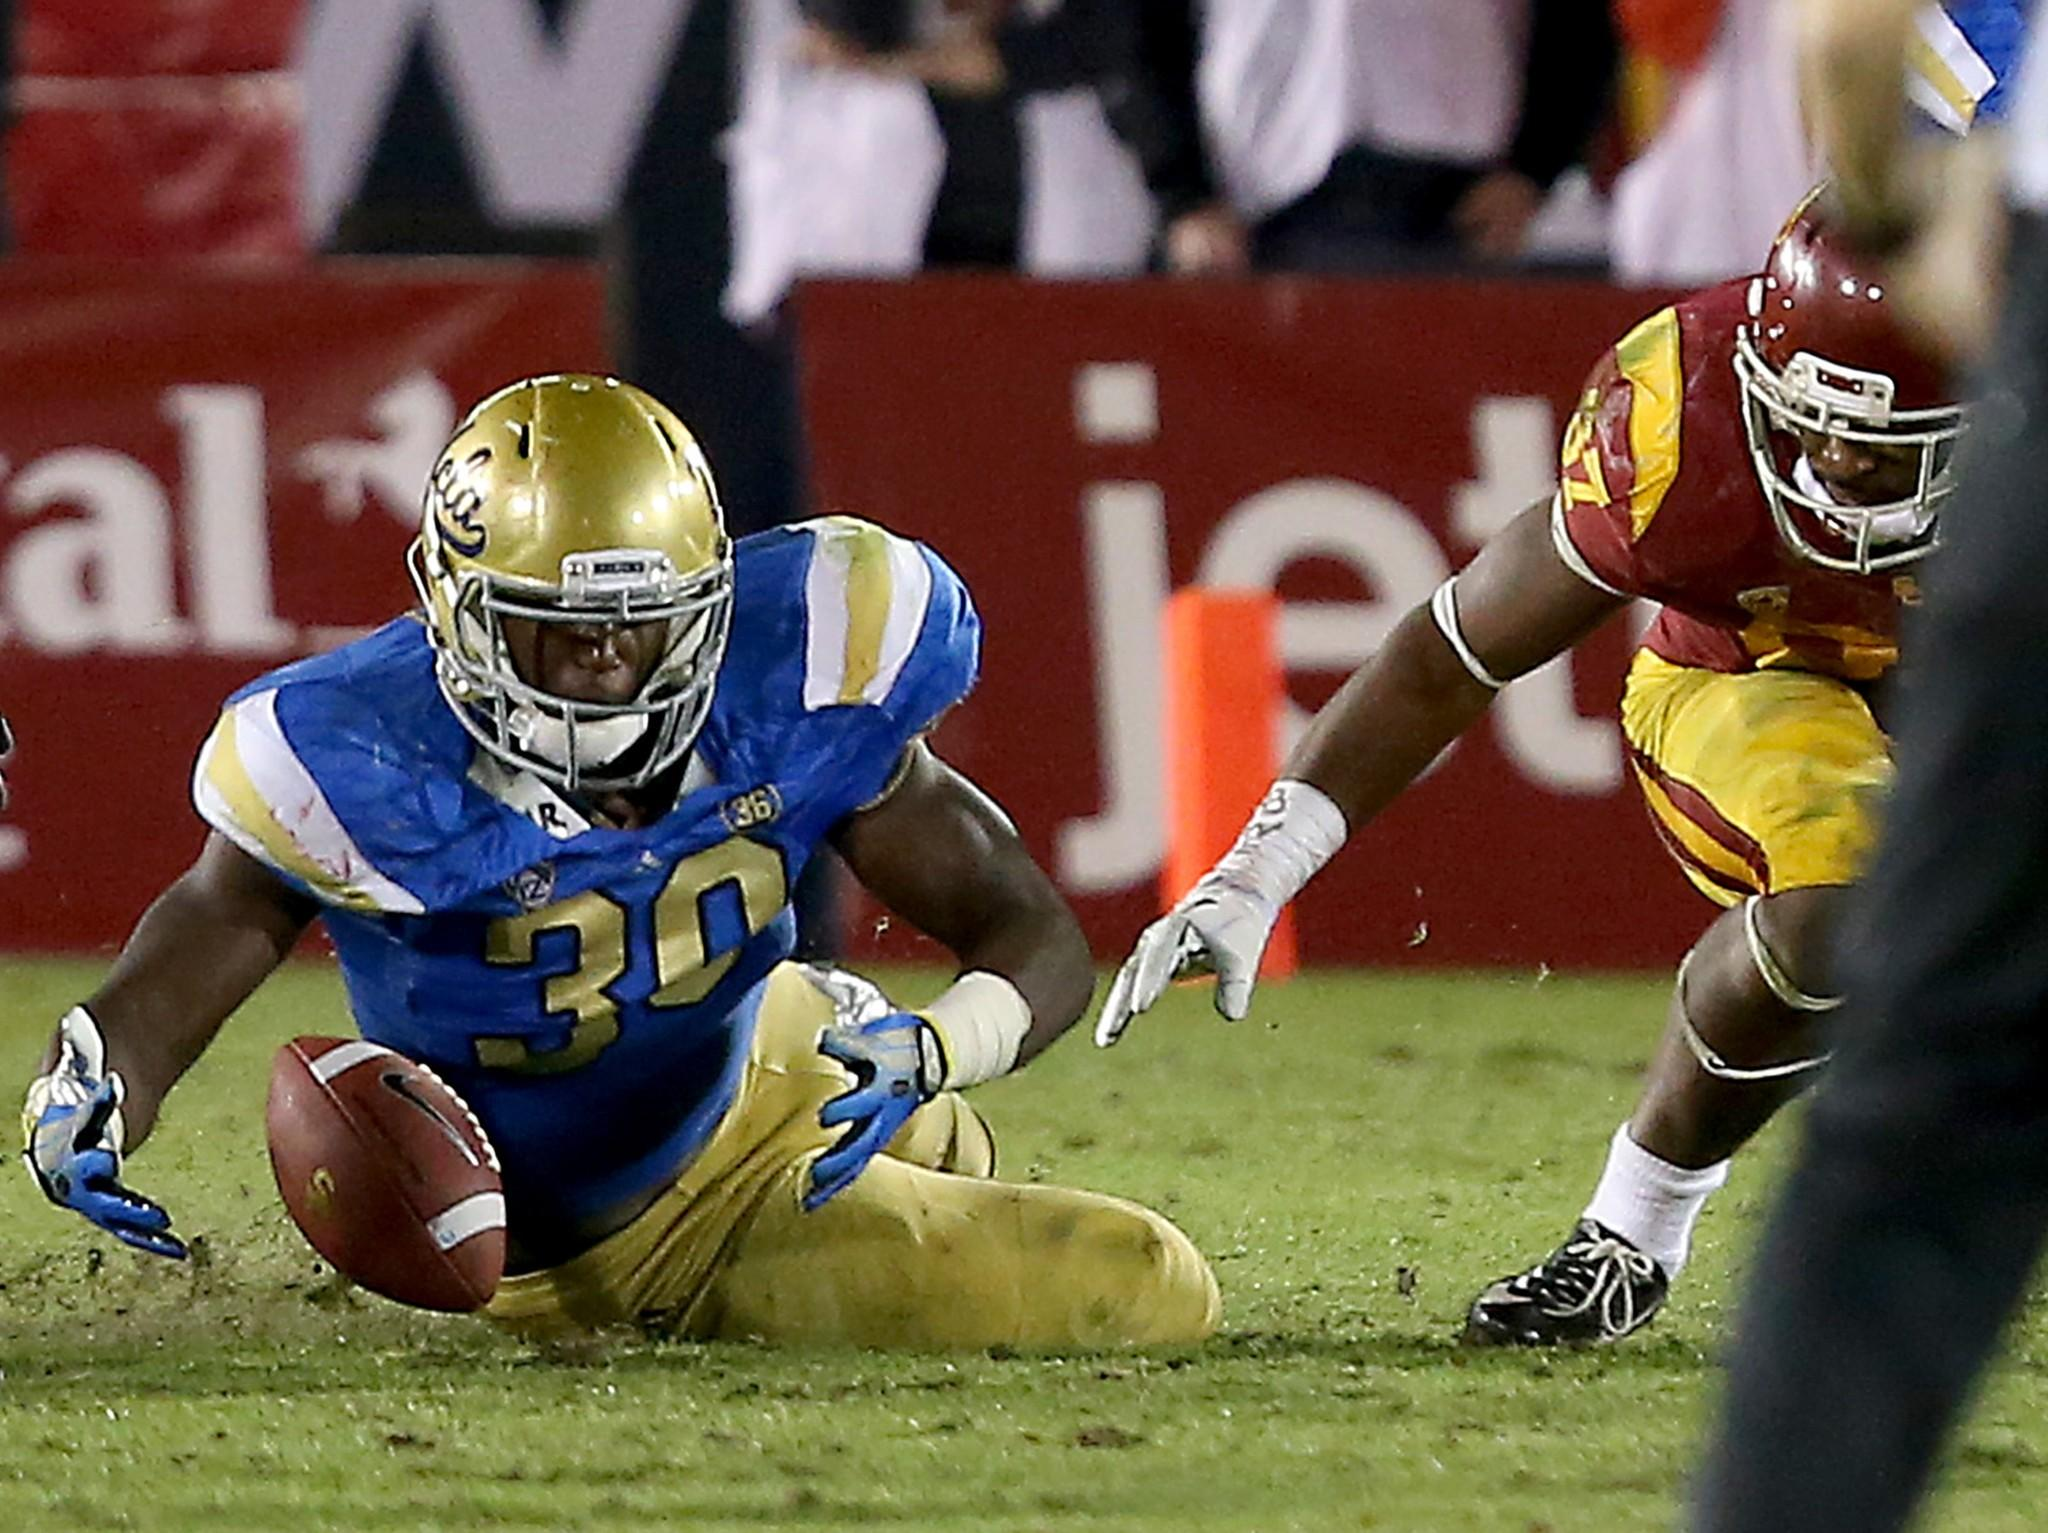 UCLA linebacker Myles Jack recovers a fumble by USC running back Javorius Allen during the Bruins-Trojans rivalry game on Nov. 30.